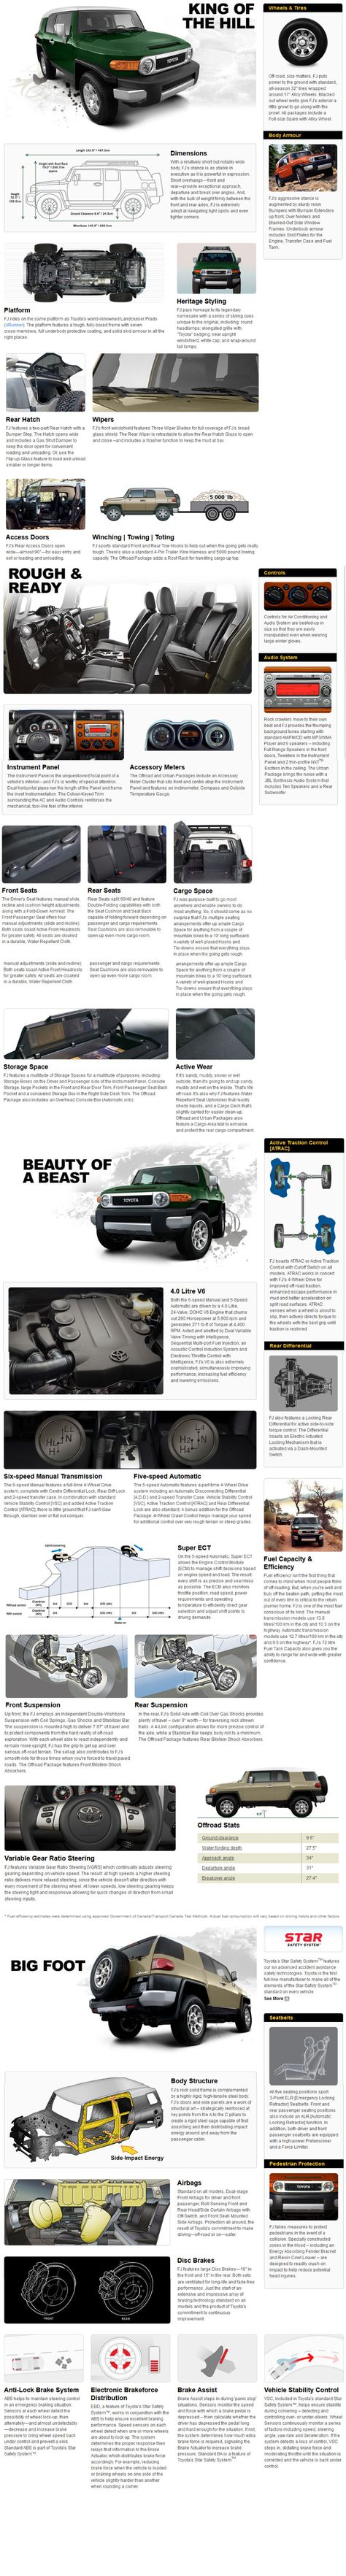 2014 Toyota FJ Cruiser Features